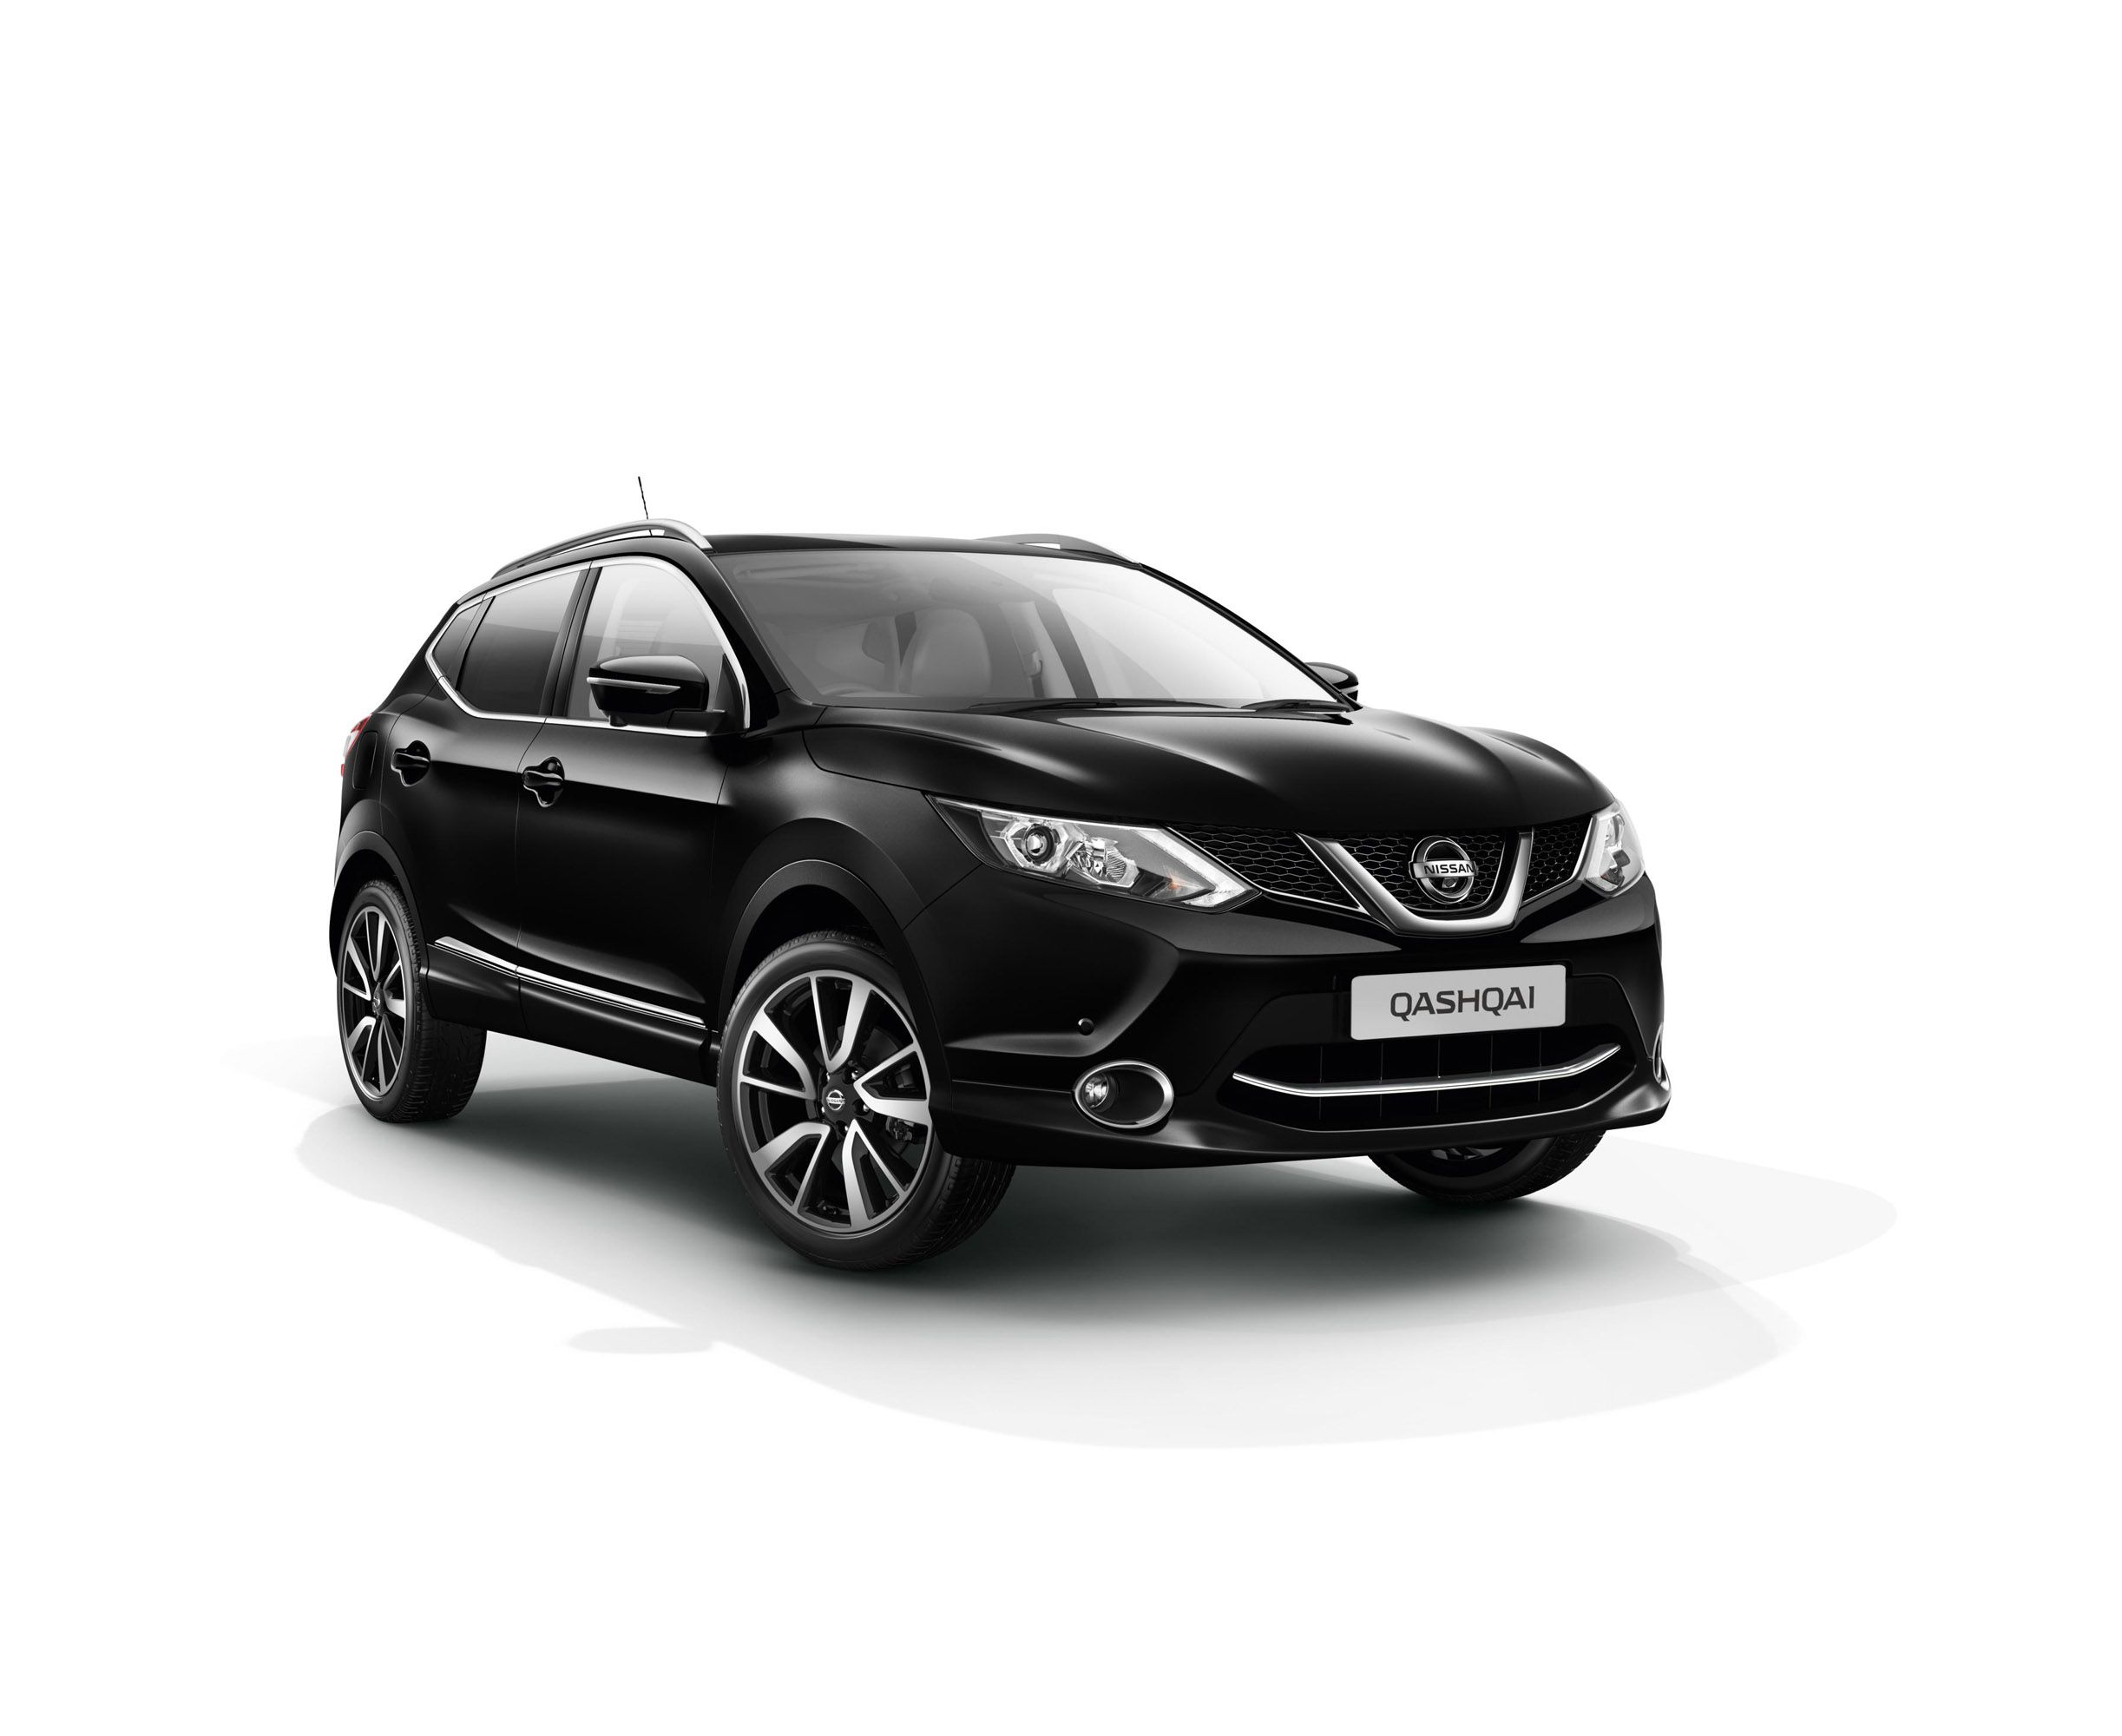 nissan launches 2014 qashqai premier limited edition nissan qashqai nissan and cars. Black Bedroom Furniture Sets. Home Design Ideas